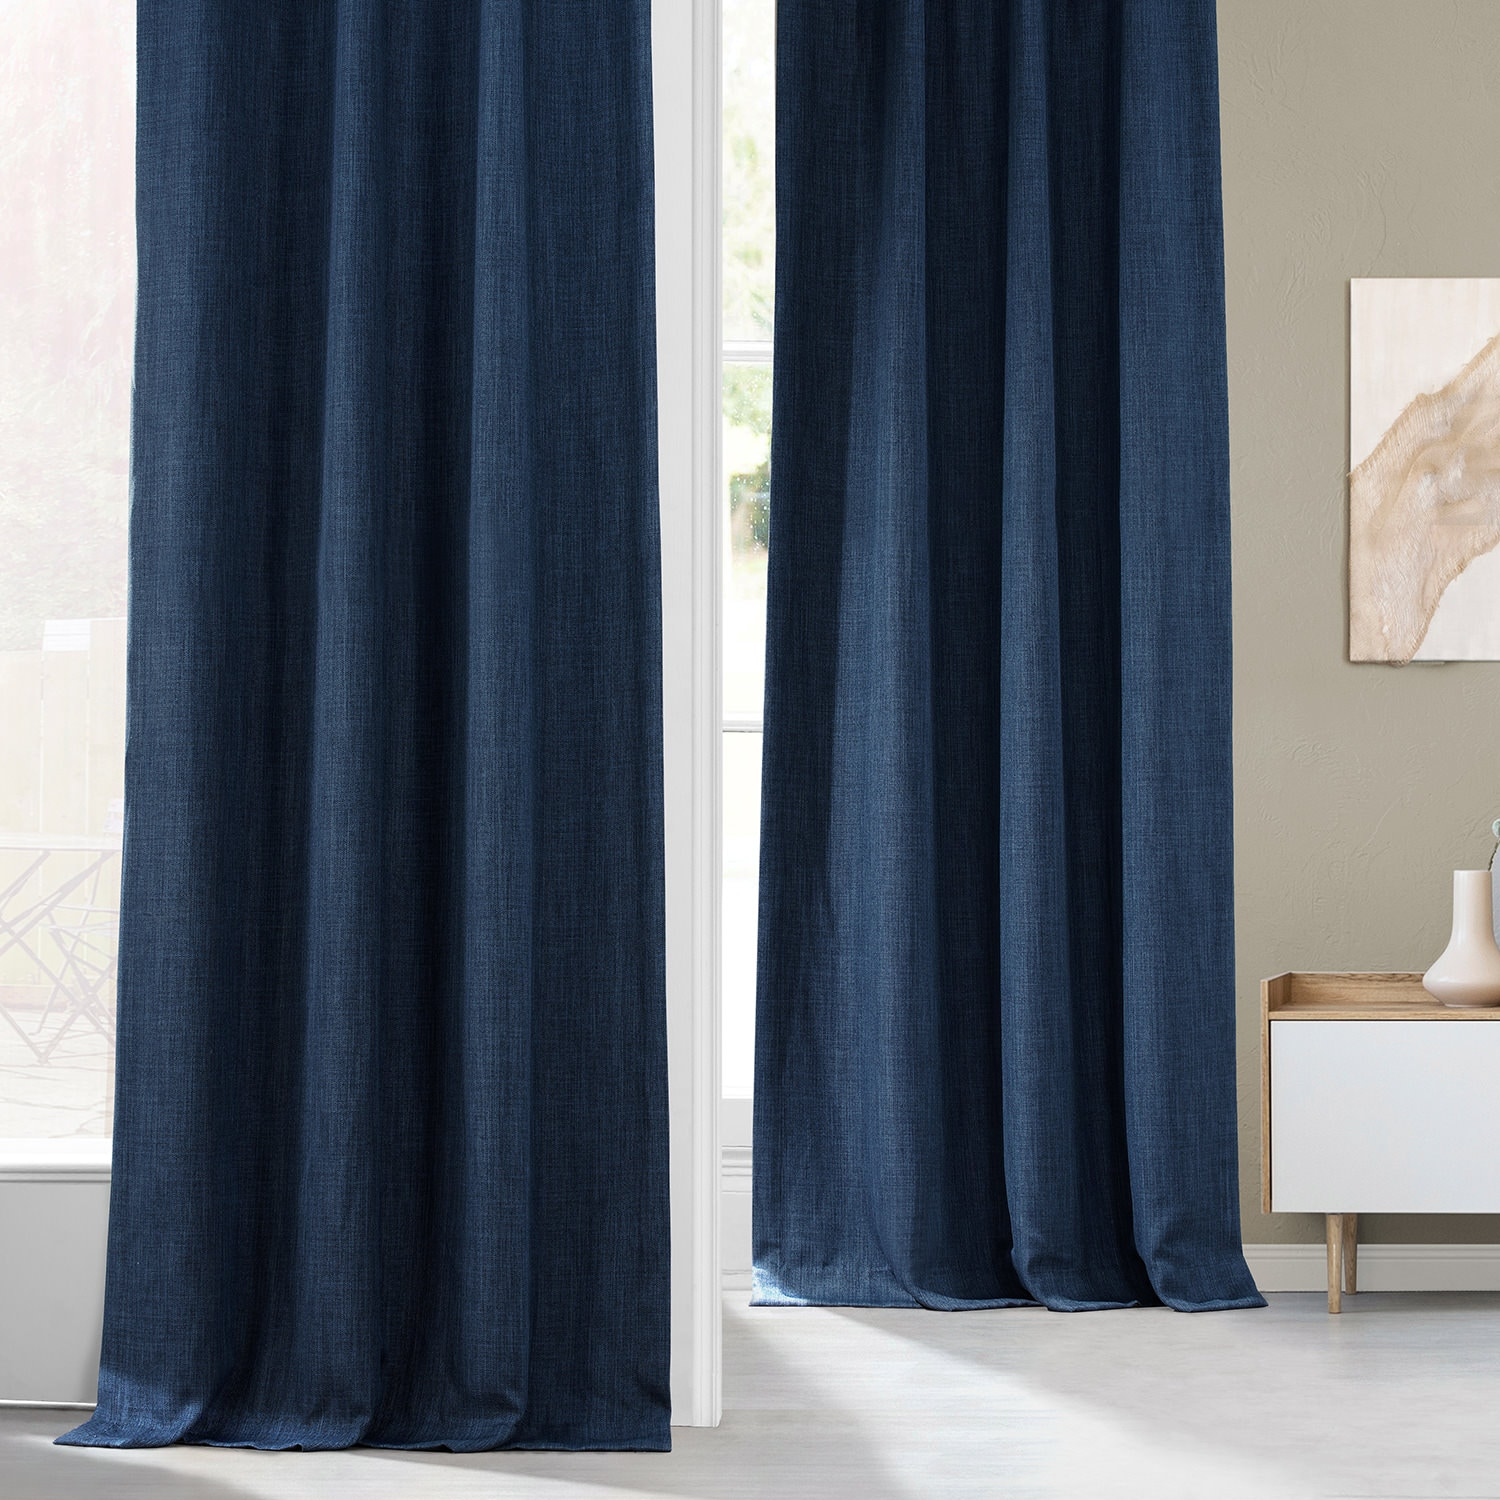 Indigo Faux Linen Blackout Room Darkening Curtain